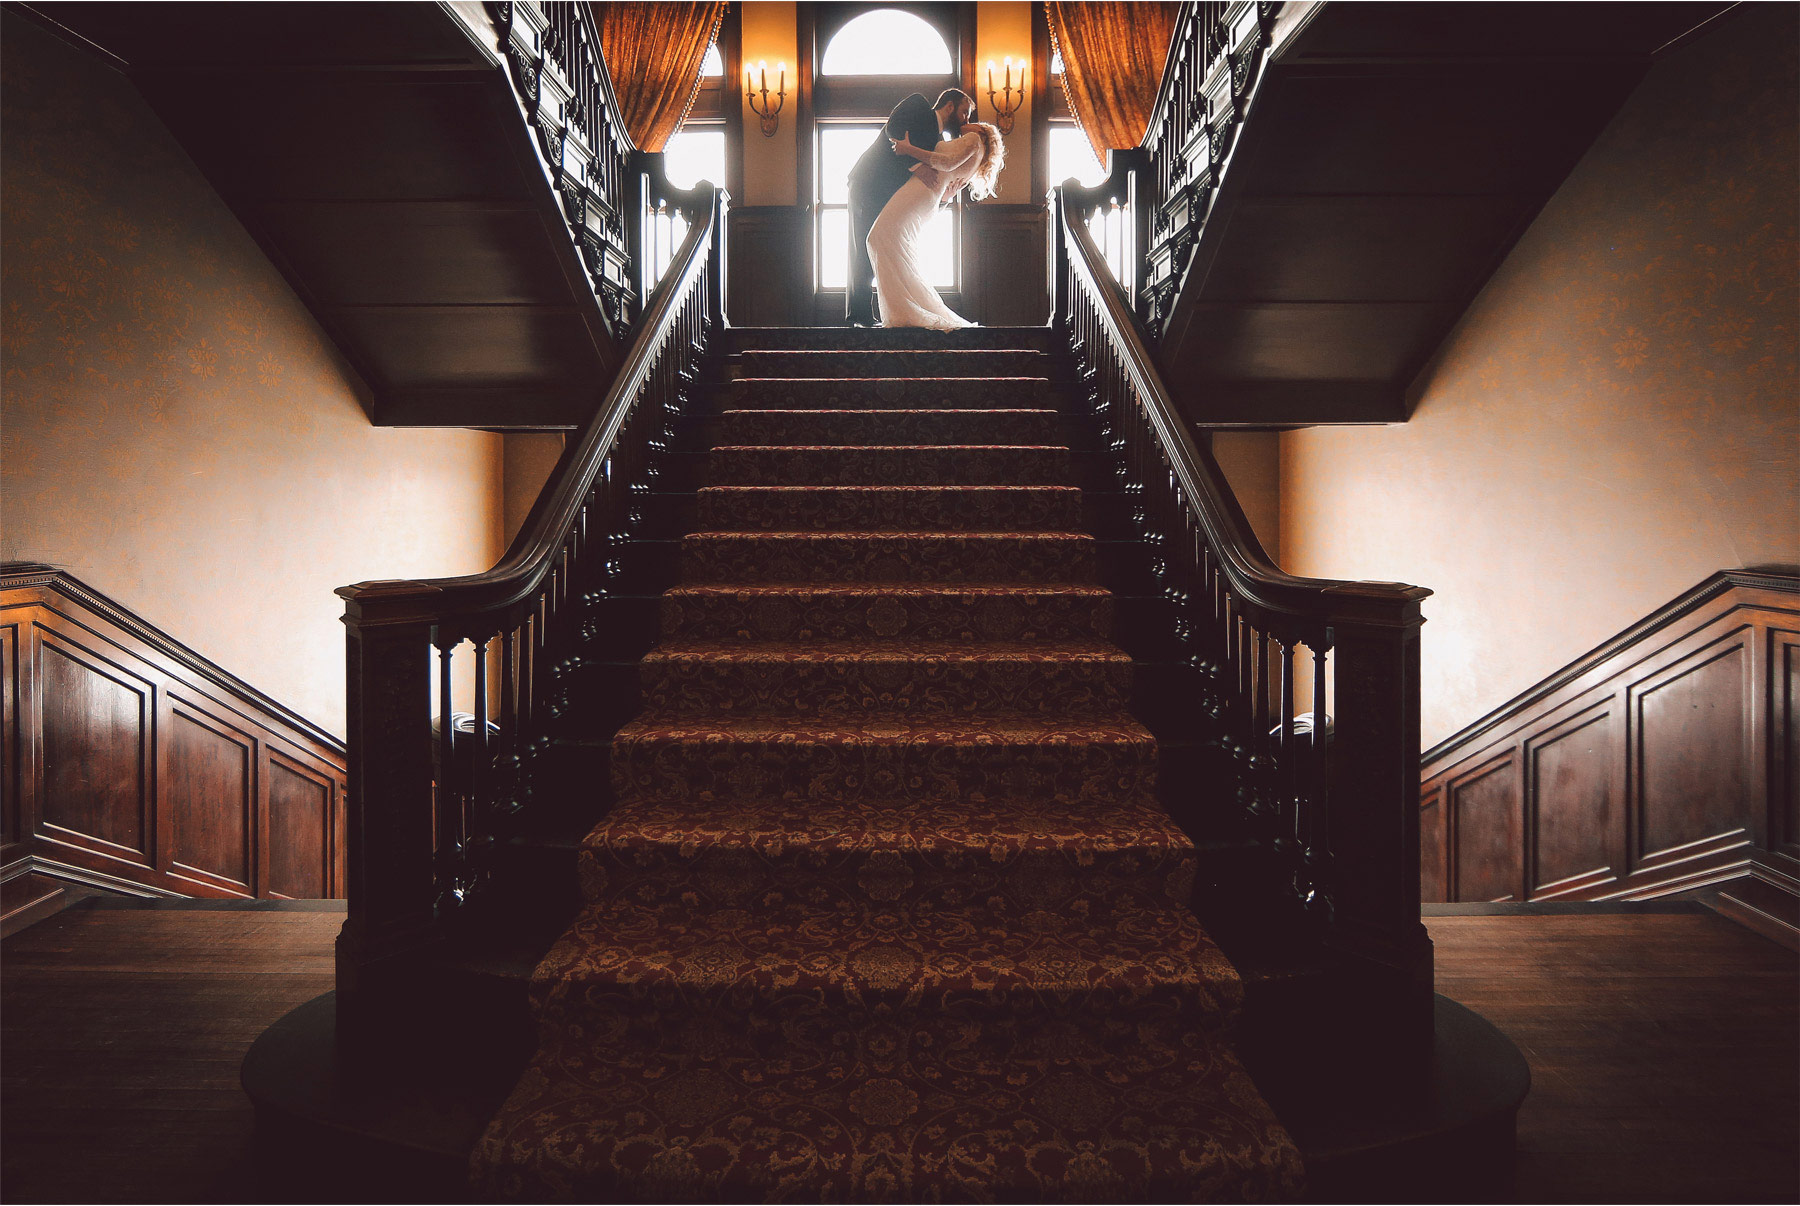 08-Minneapolis-Wedding-Photography-by-Vick-Photography-Mansion-Shayla-and-Kyle.jpg